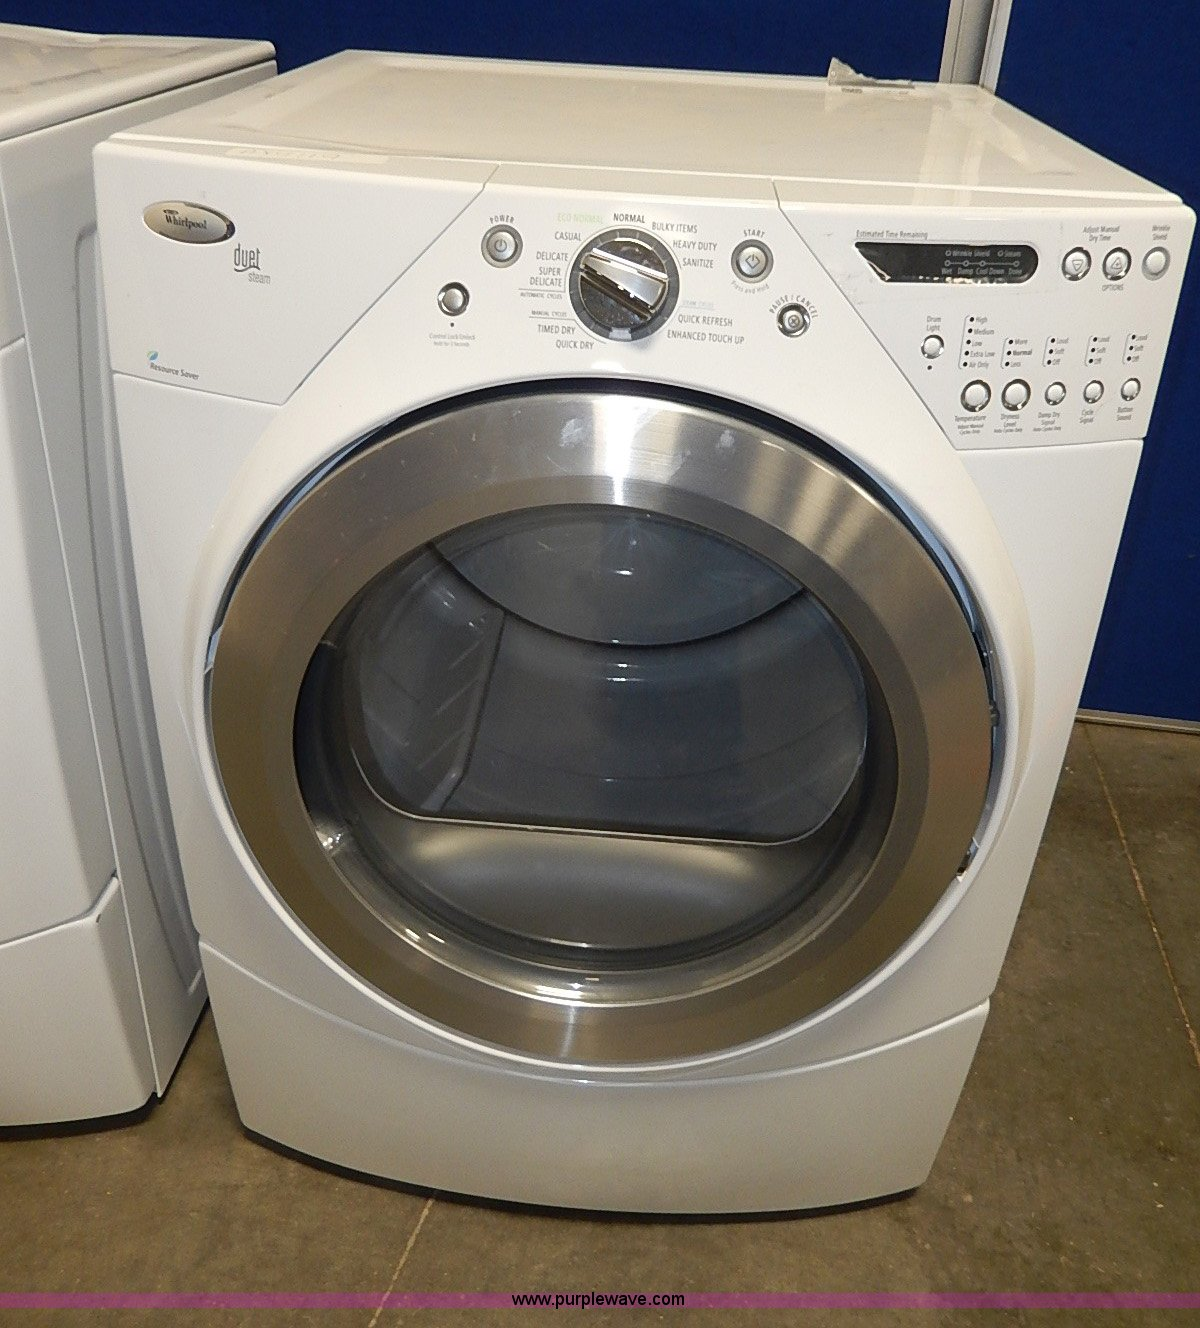 Whirlpool Duet Front Load Washer And Dryer Set Item - Whirlpool Steam Dryer